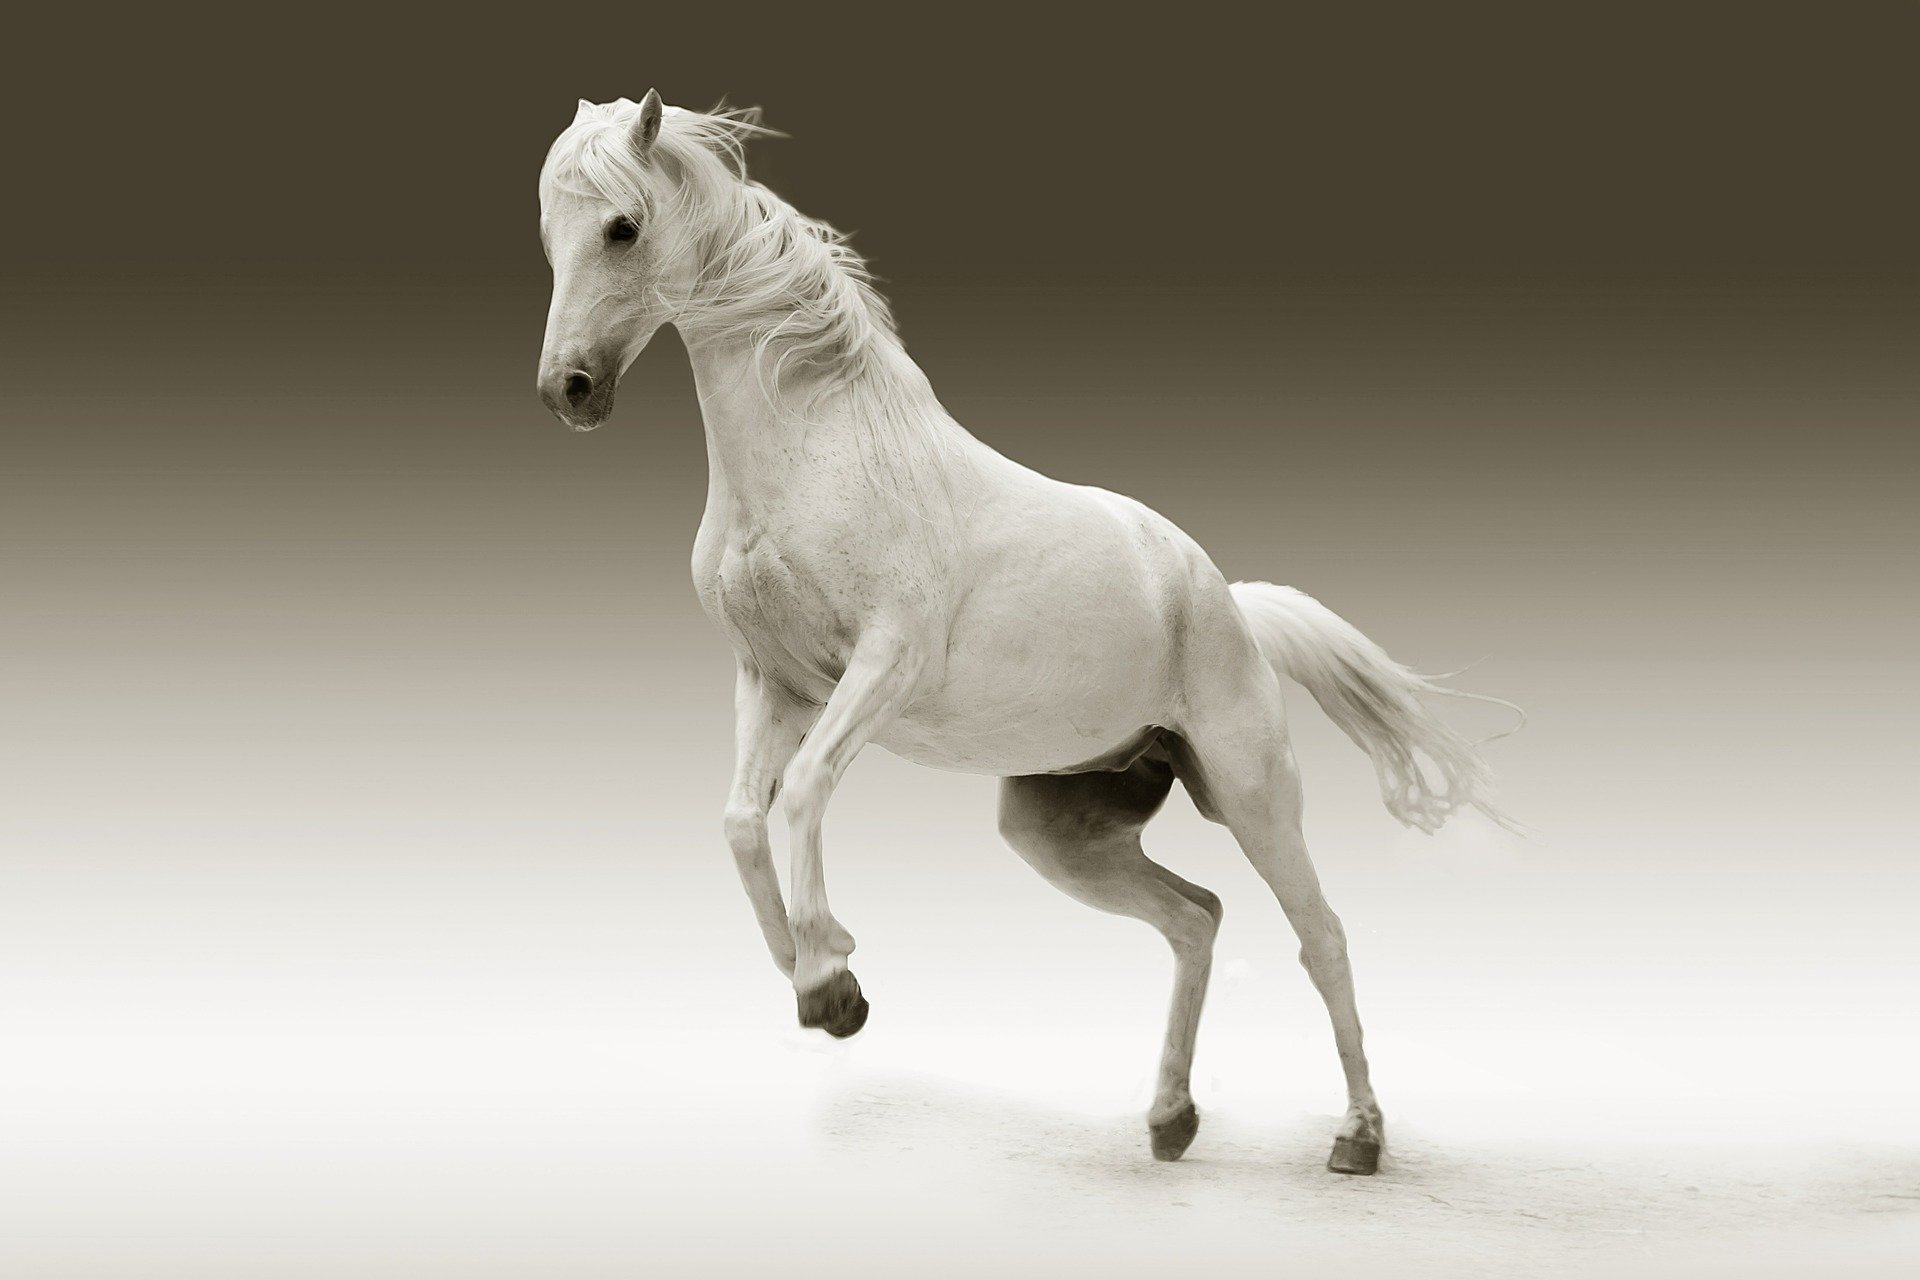 Pictured - A white mare horse   Source: Pixabay